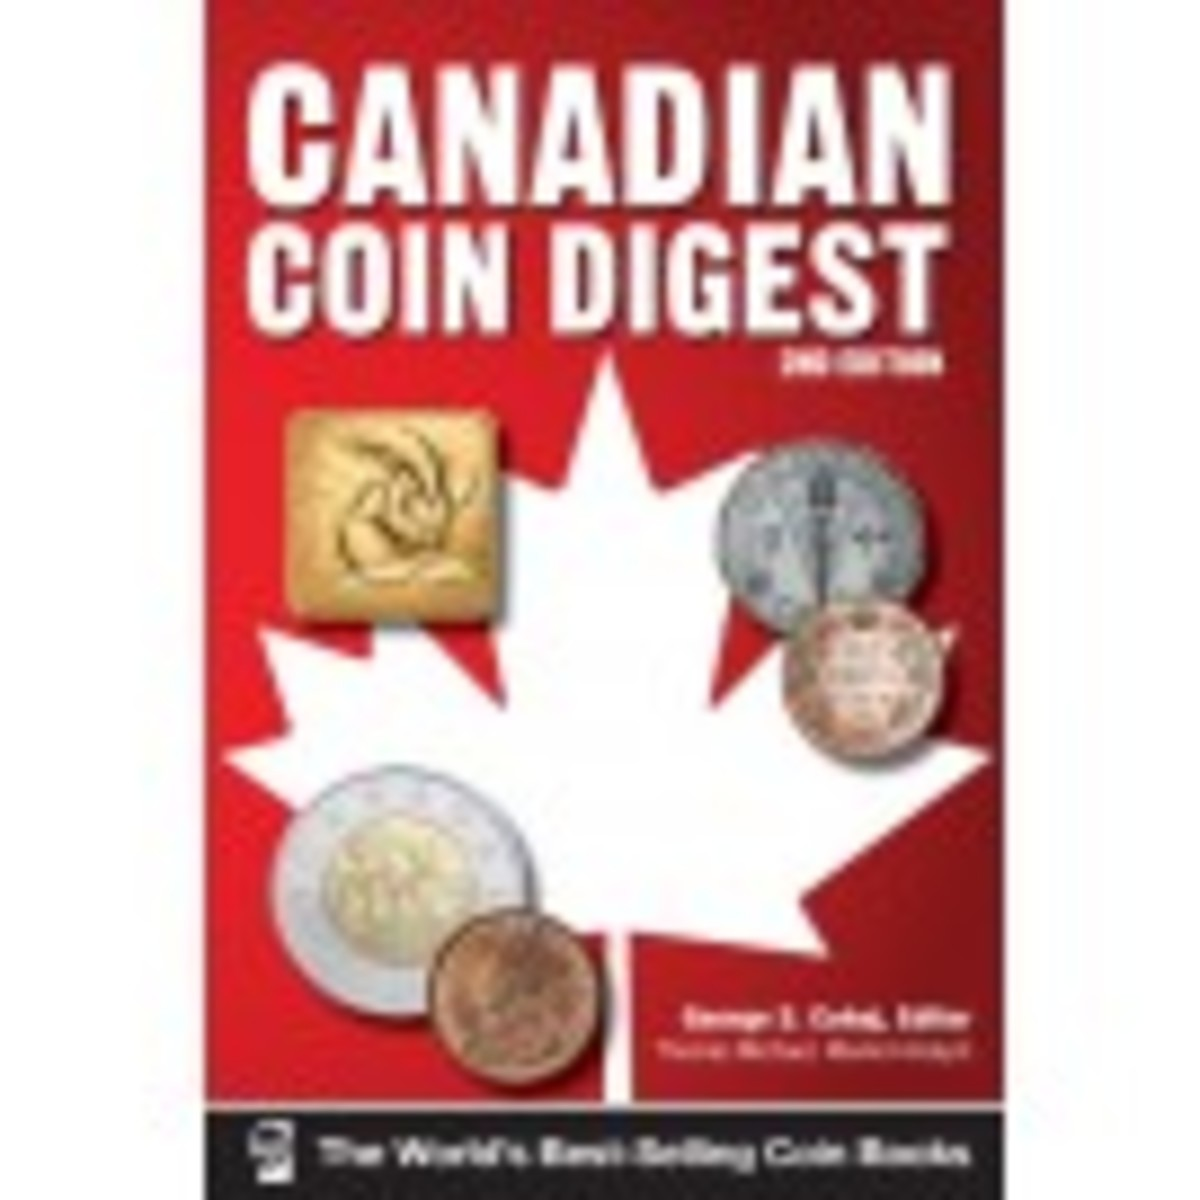 A grand overview of the coins of Canada while providing the greatest value of any guide on the market.